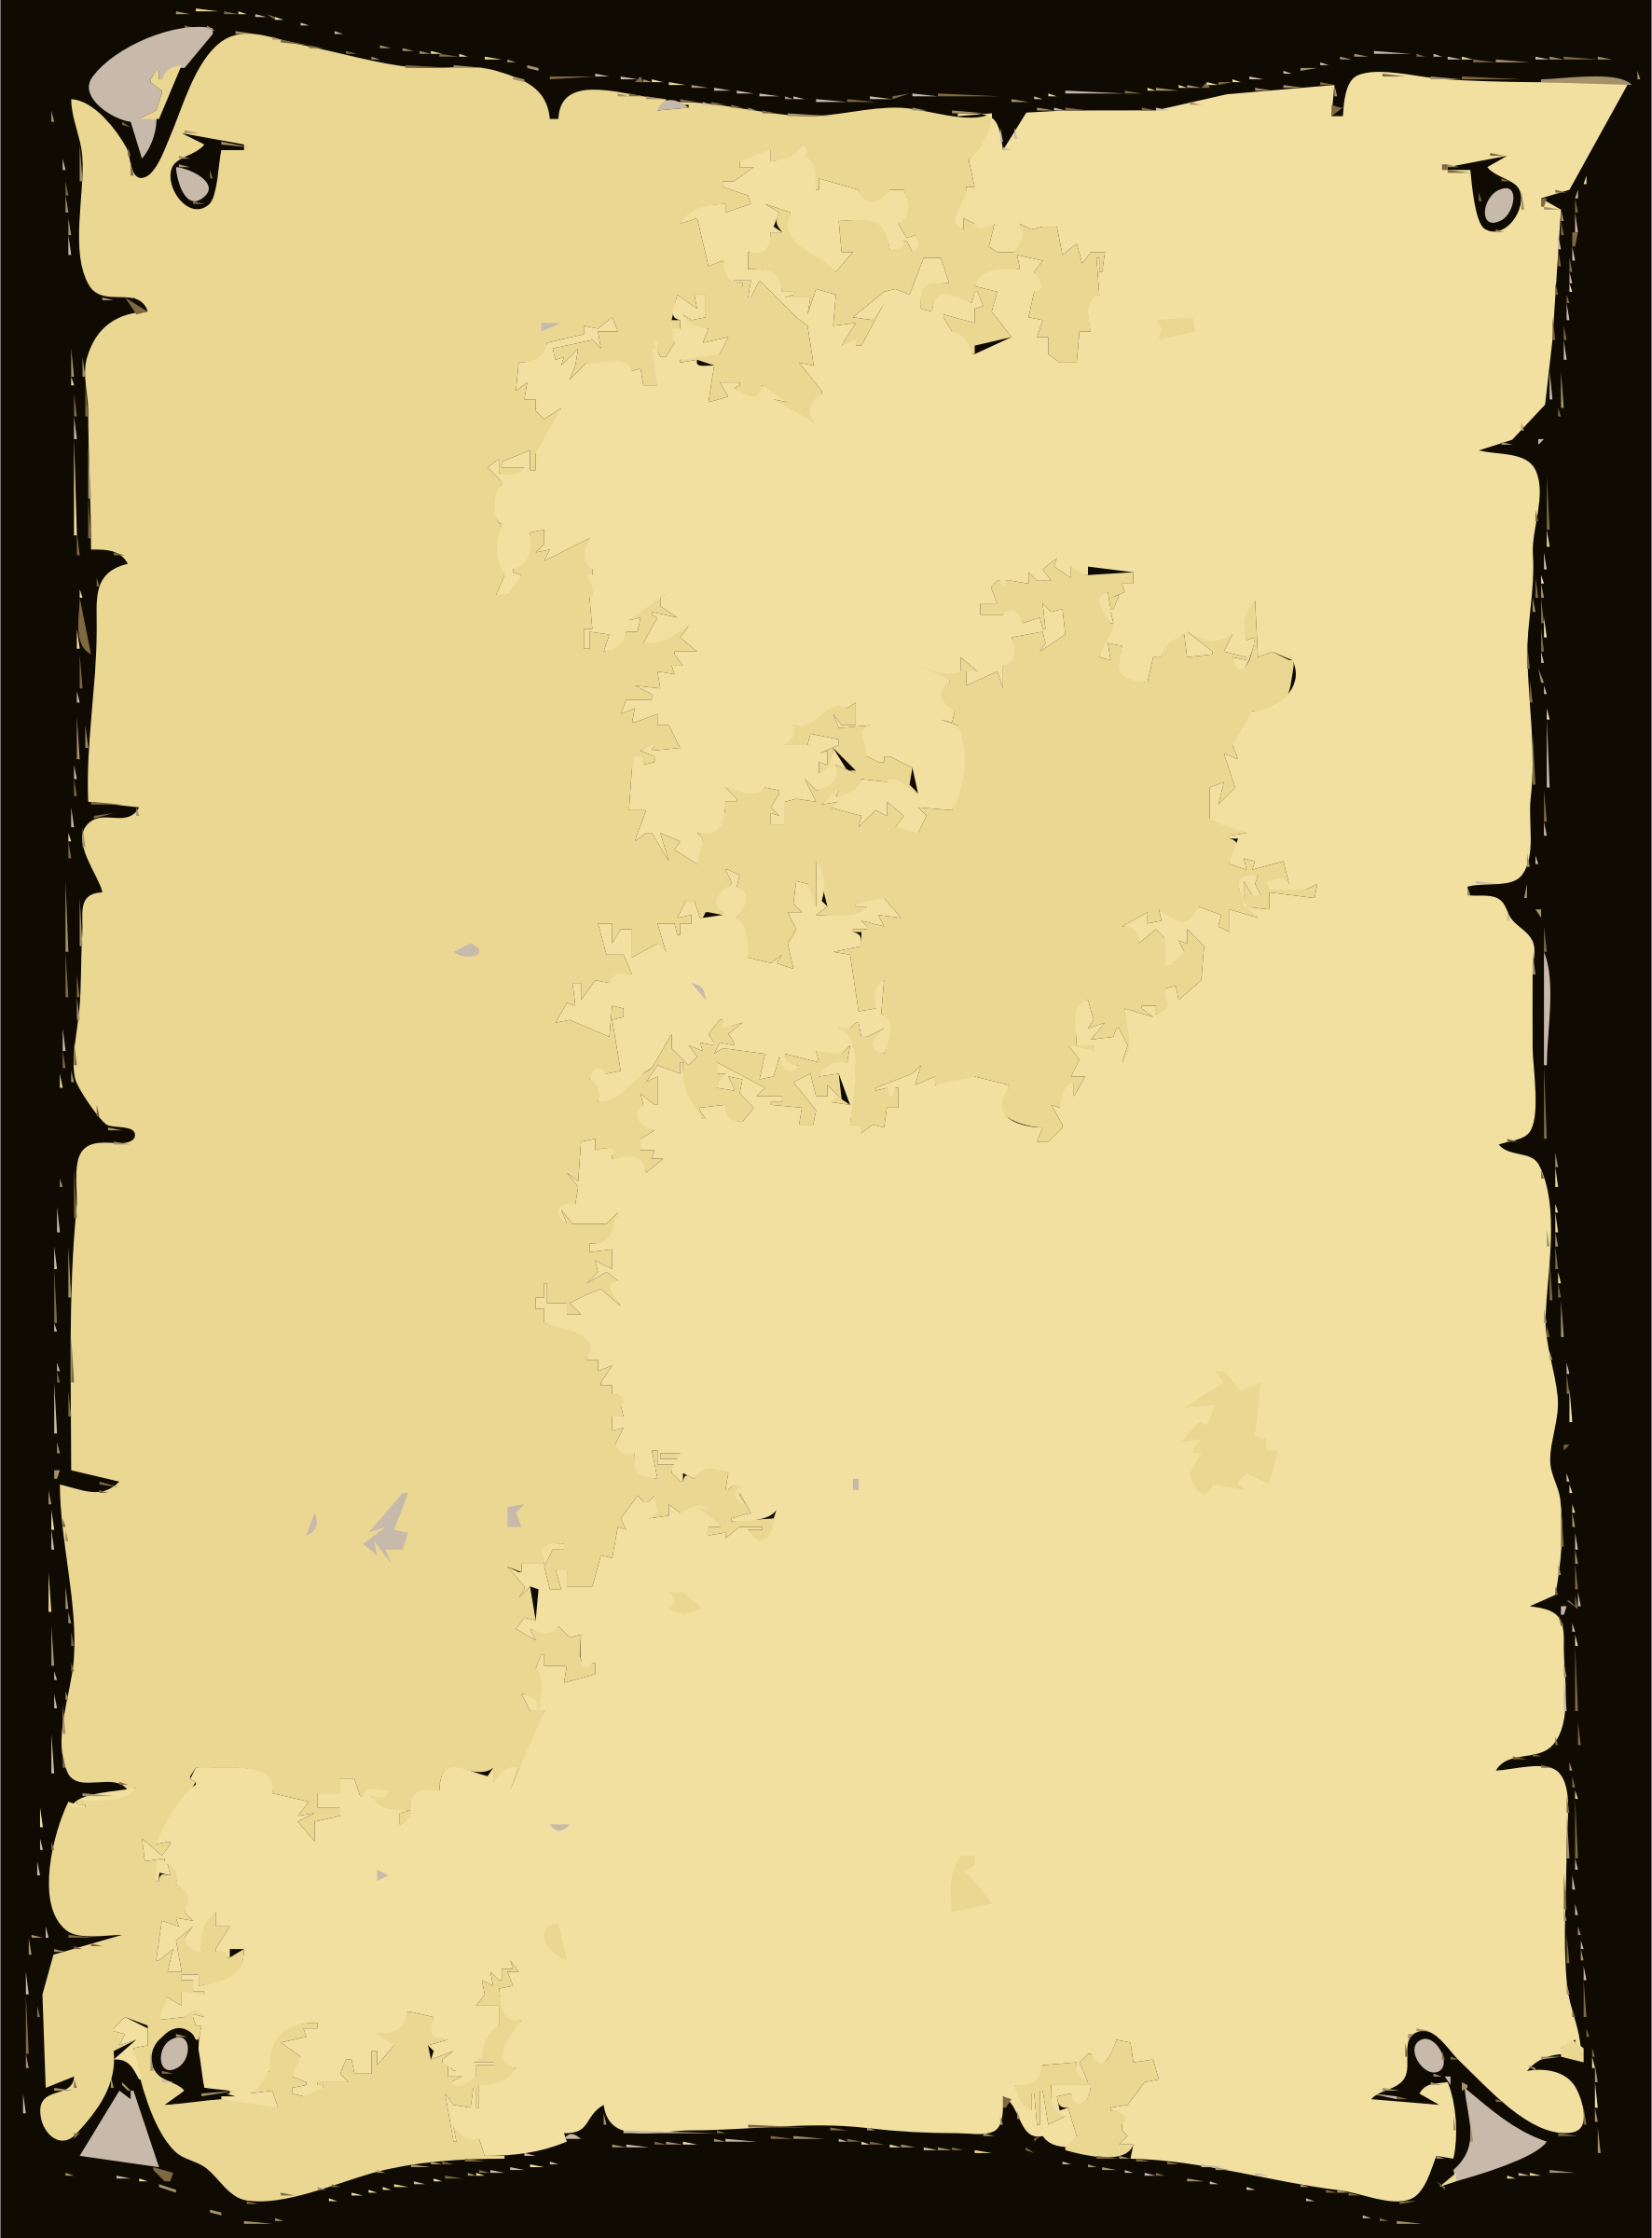 Wanted Poster Blank-Wanted Poster Blank-10